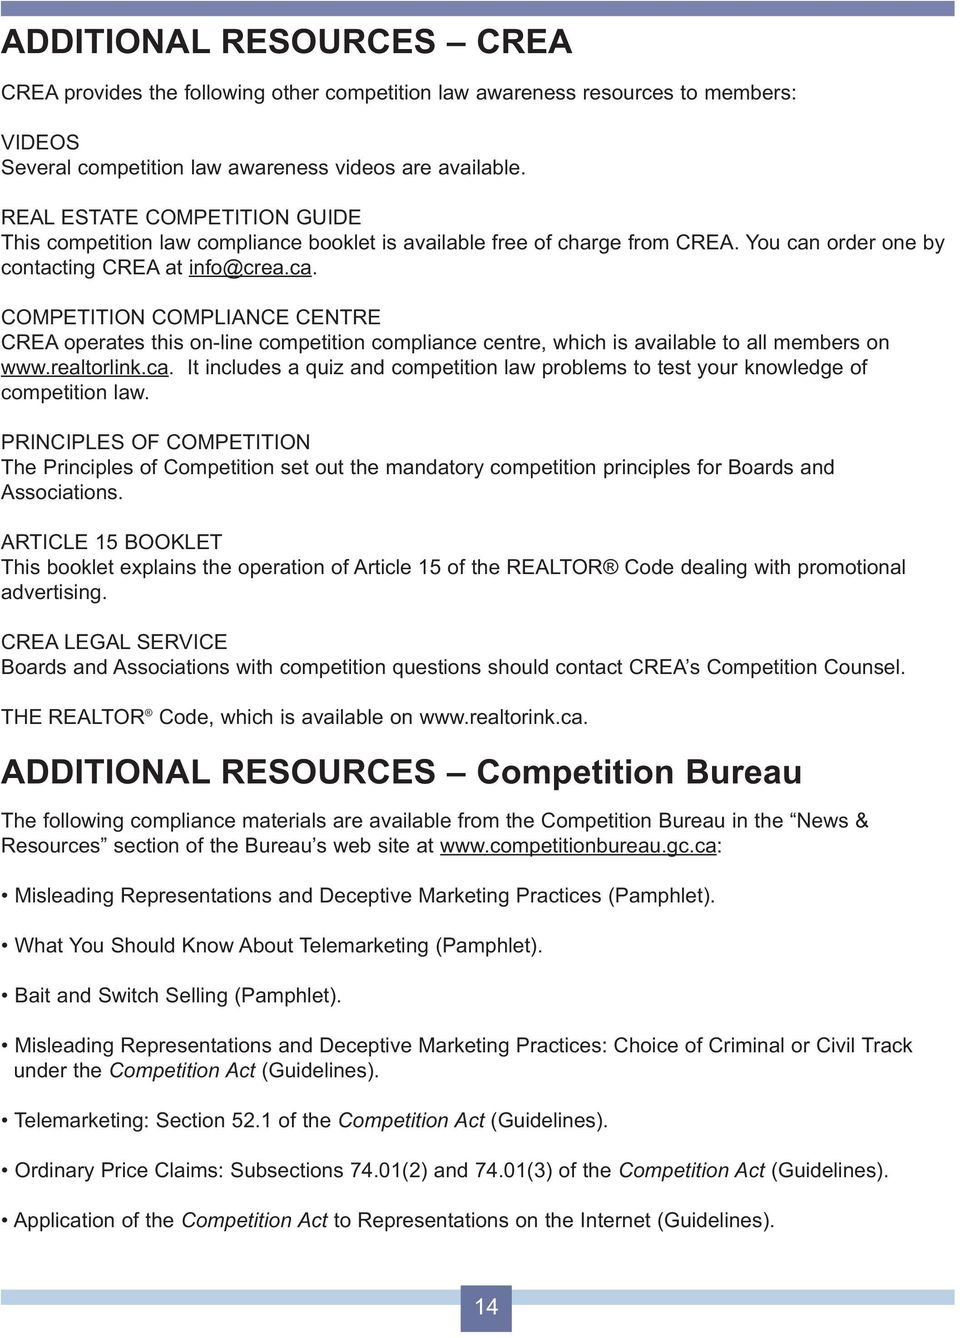 order one by contacting CREA at info@crea.ca. COMPETITION COMPLIANCE CENTRE CREA operates this on-line competition compliance centre, which is available to all members on www.realtorlink.ca. It includes a quiz and competition law problems to test your knowledge of competition law.